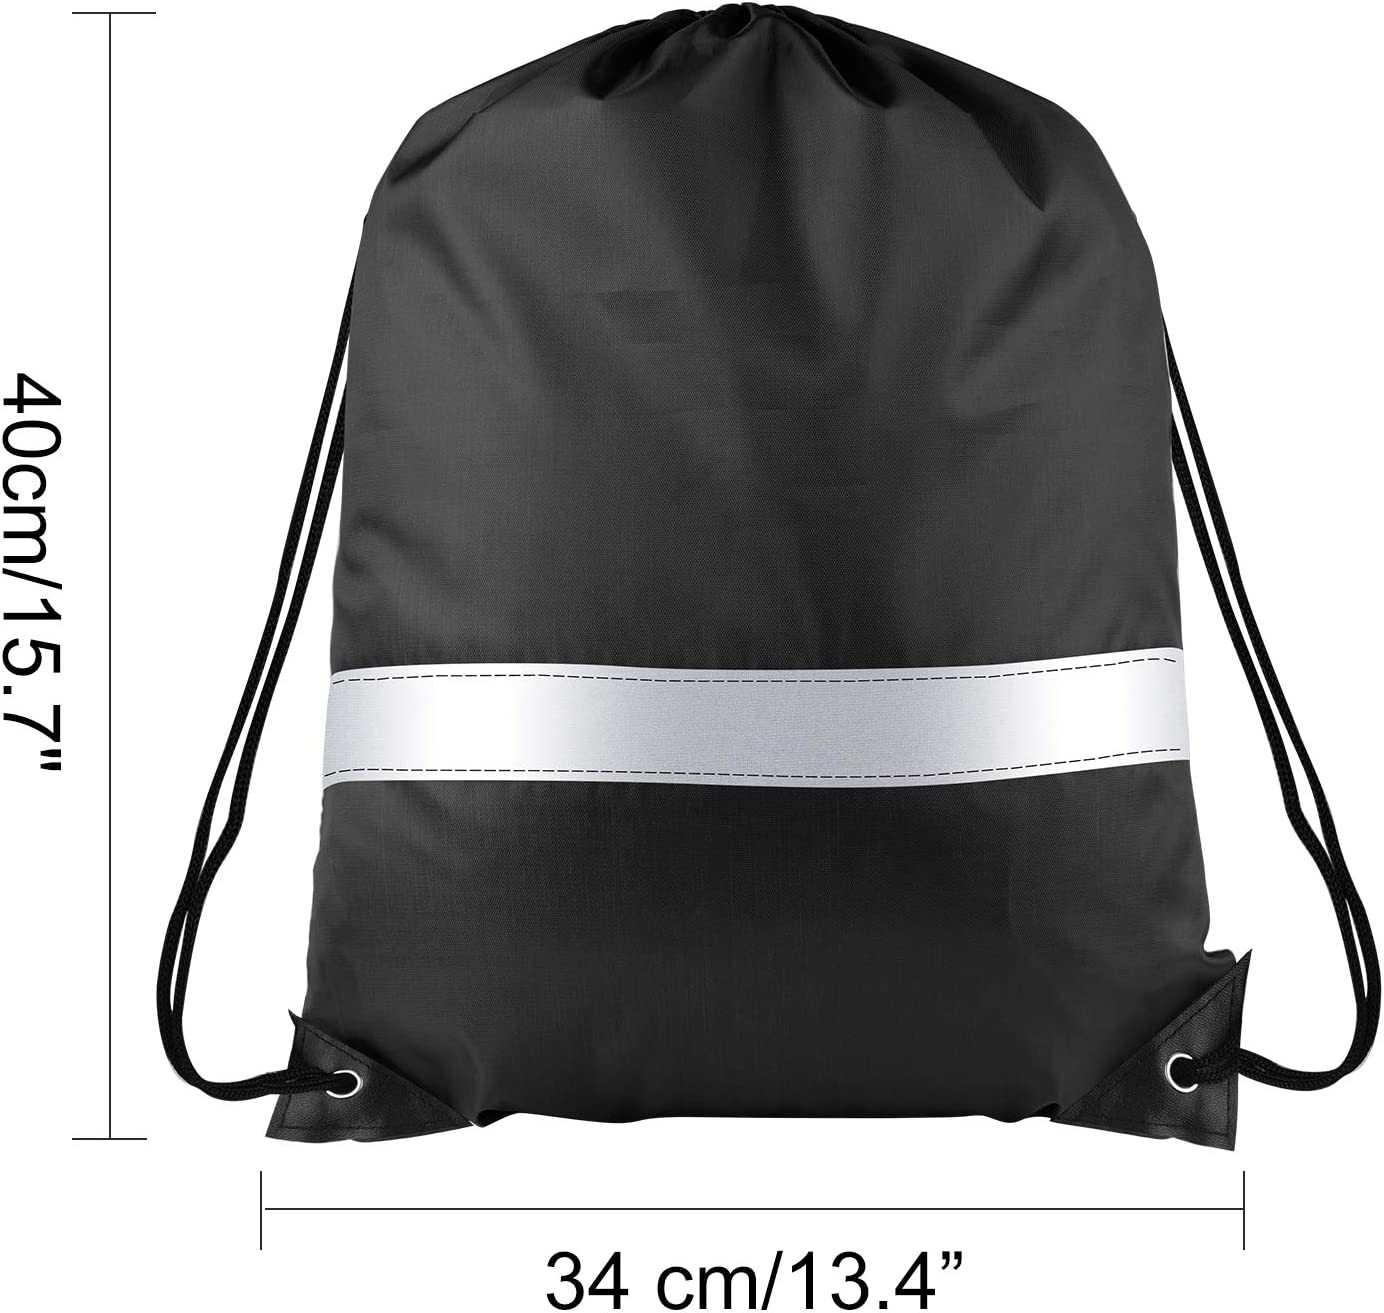 18 Inch Drawstring Backpack Cinch Bag Wholesale Bulk Case Pack Of 48